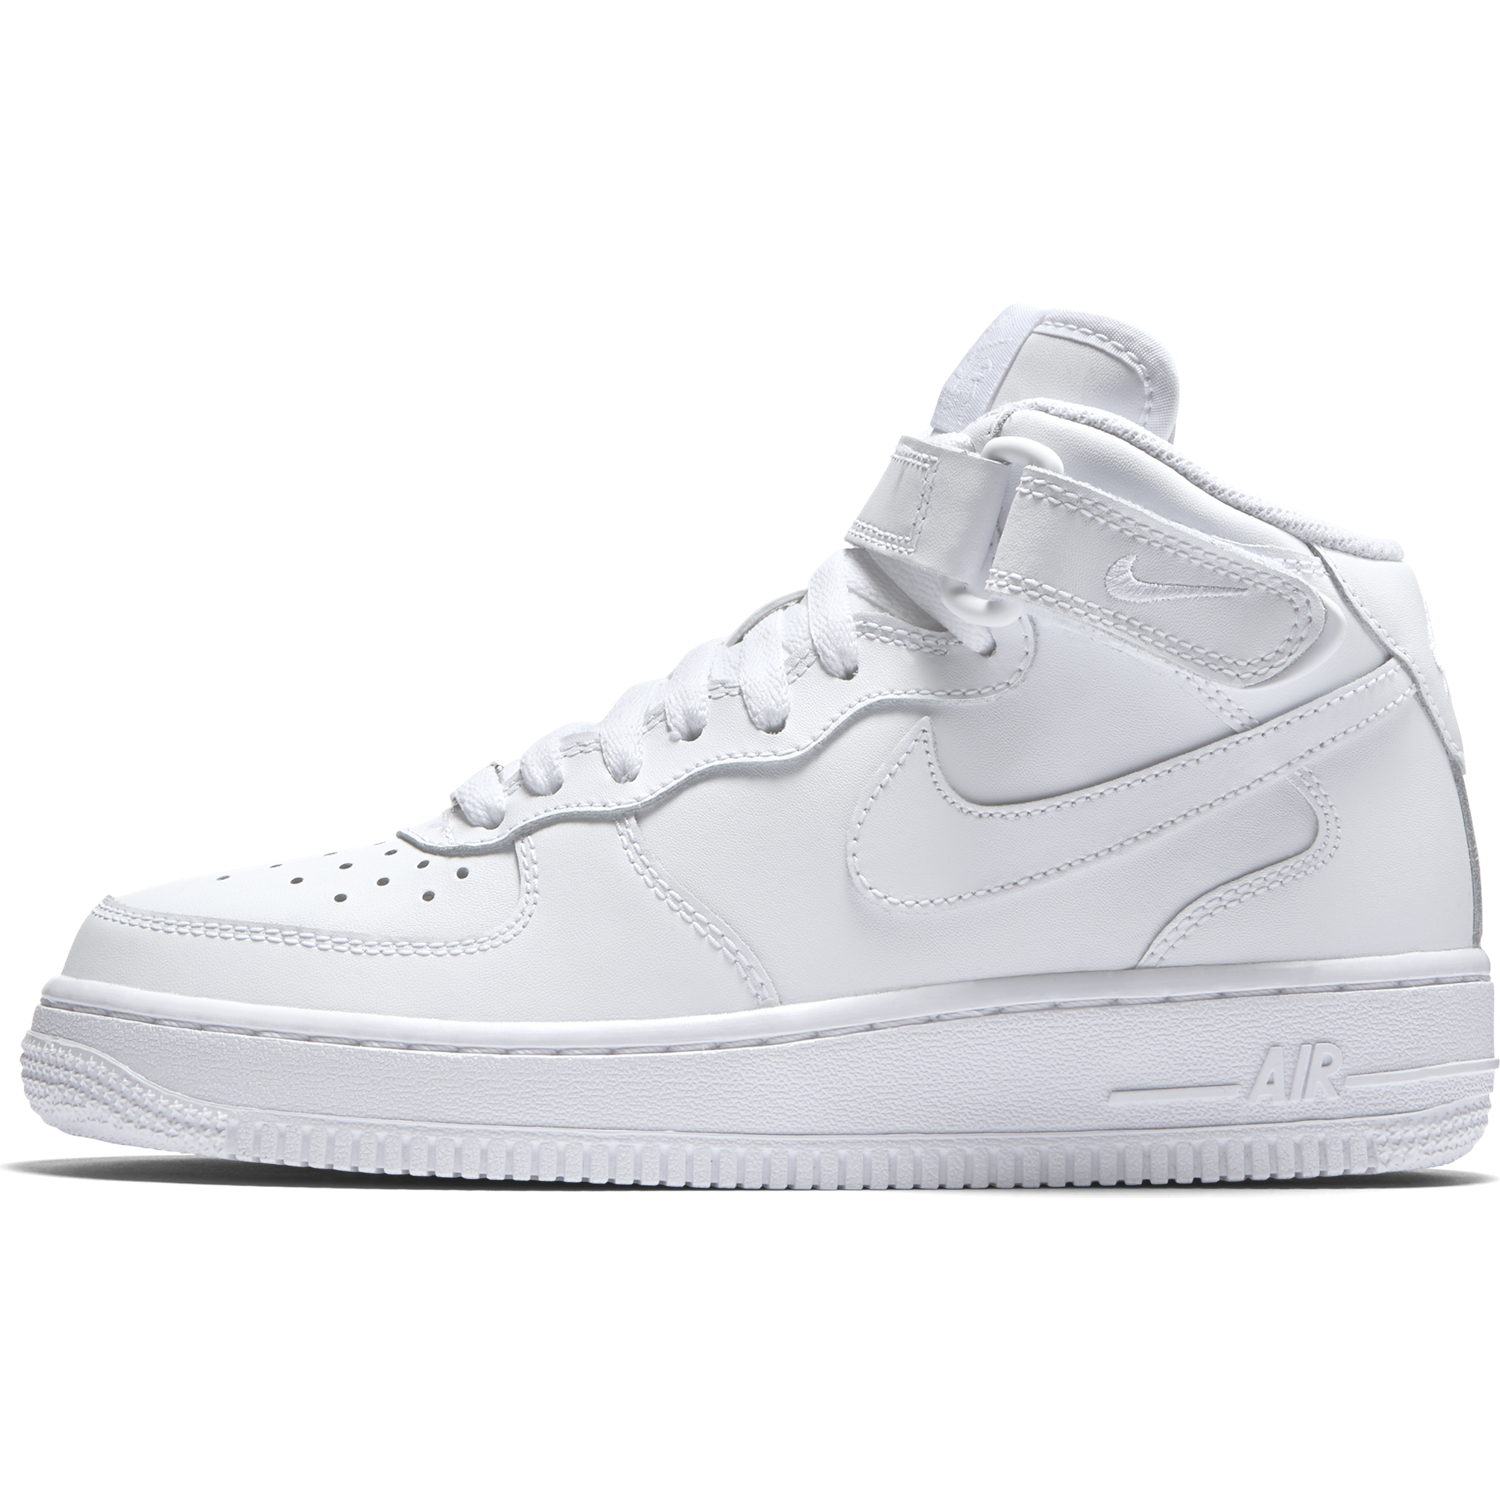 BUTY JUNIOR NIKE AIR FORCE 1 MID (GS) BIAŁE 314195 113